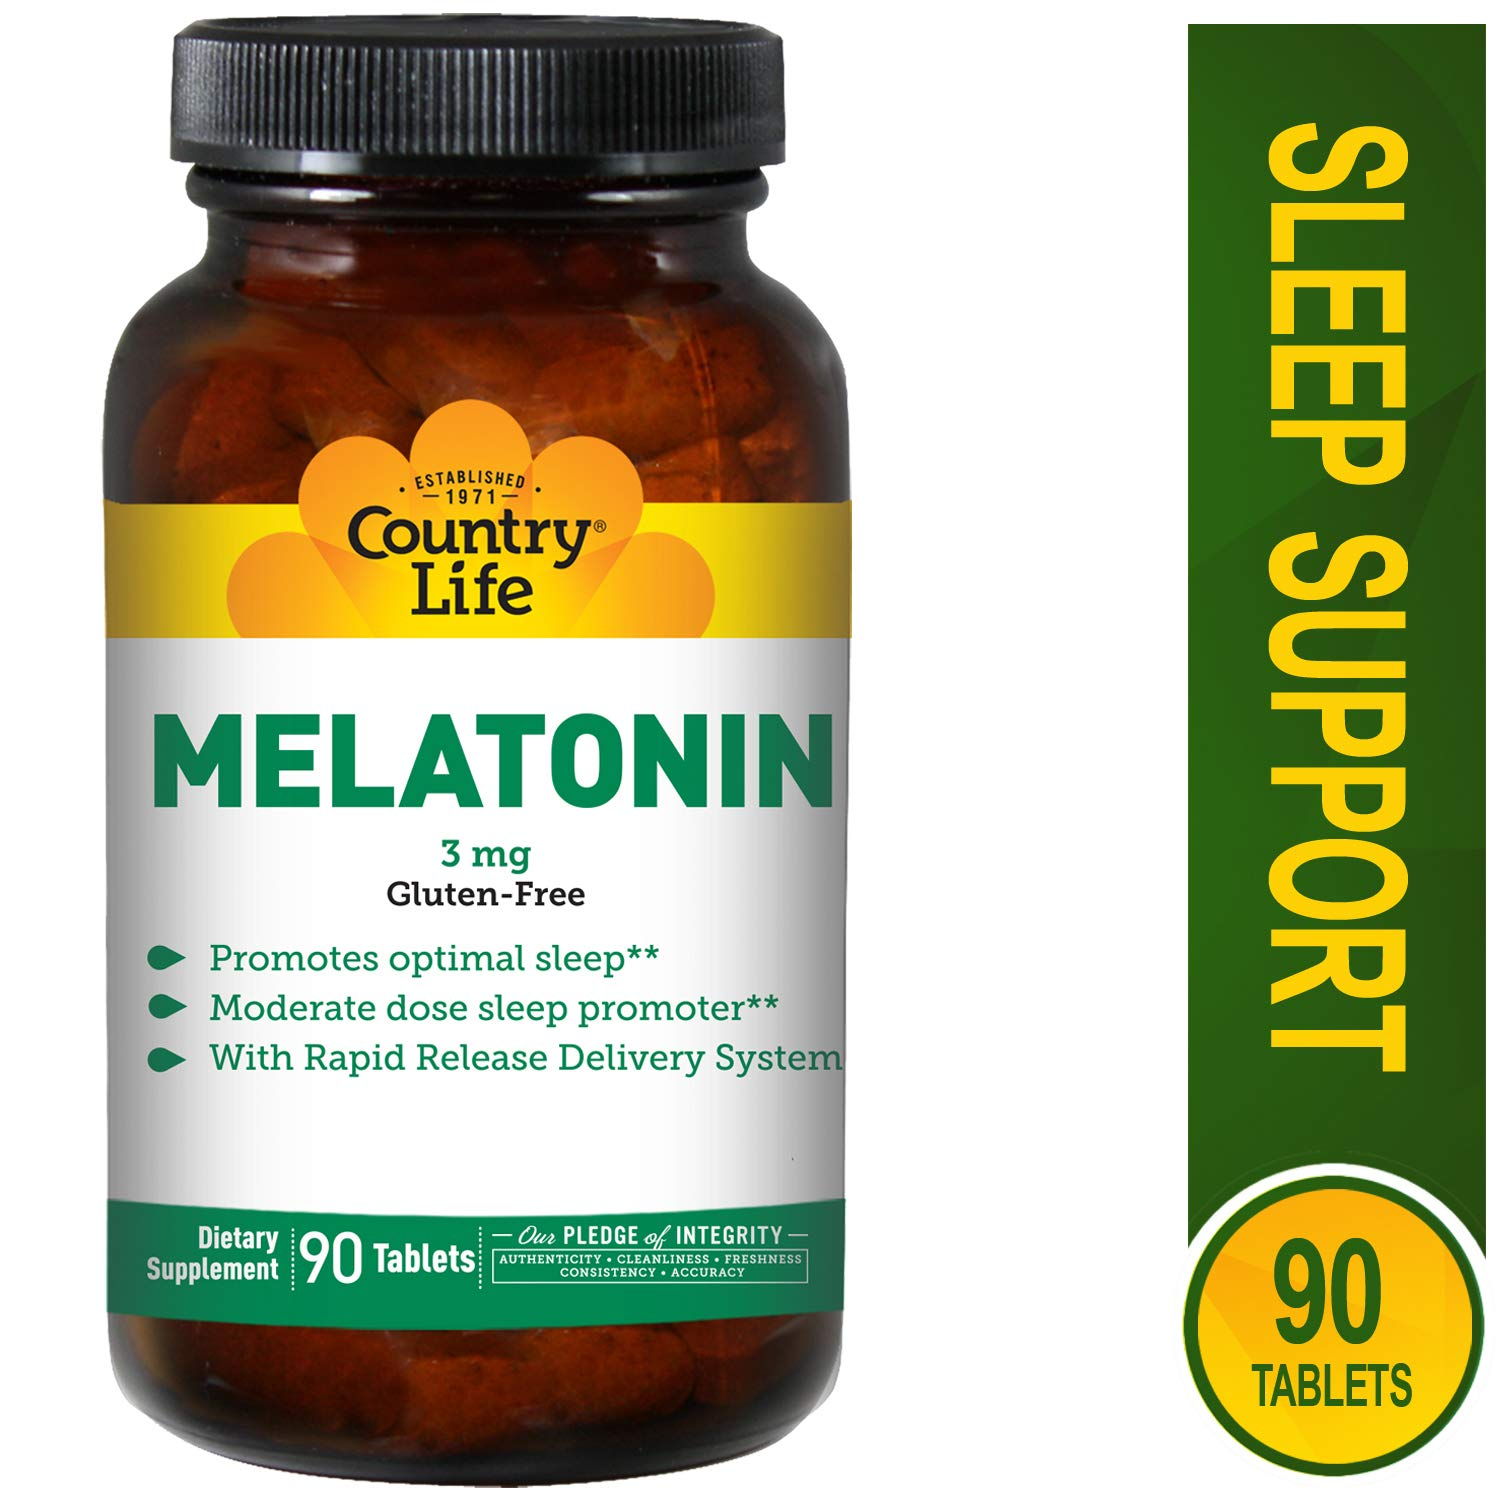 Country Life Melatonin Rapid Release, 3 mg - 90 Tablets